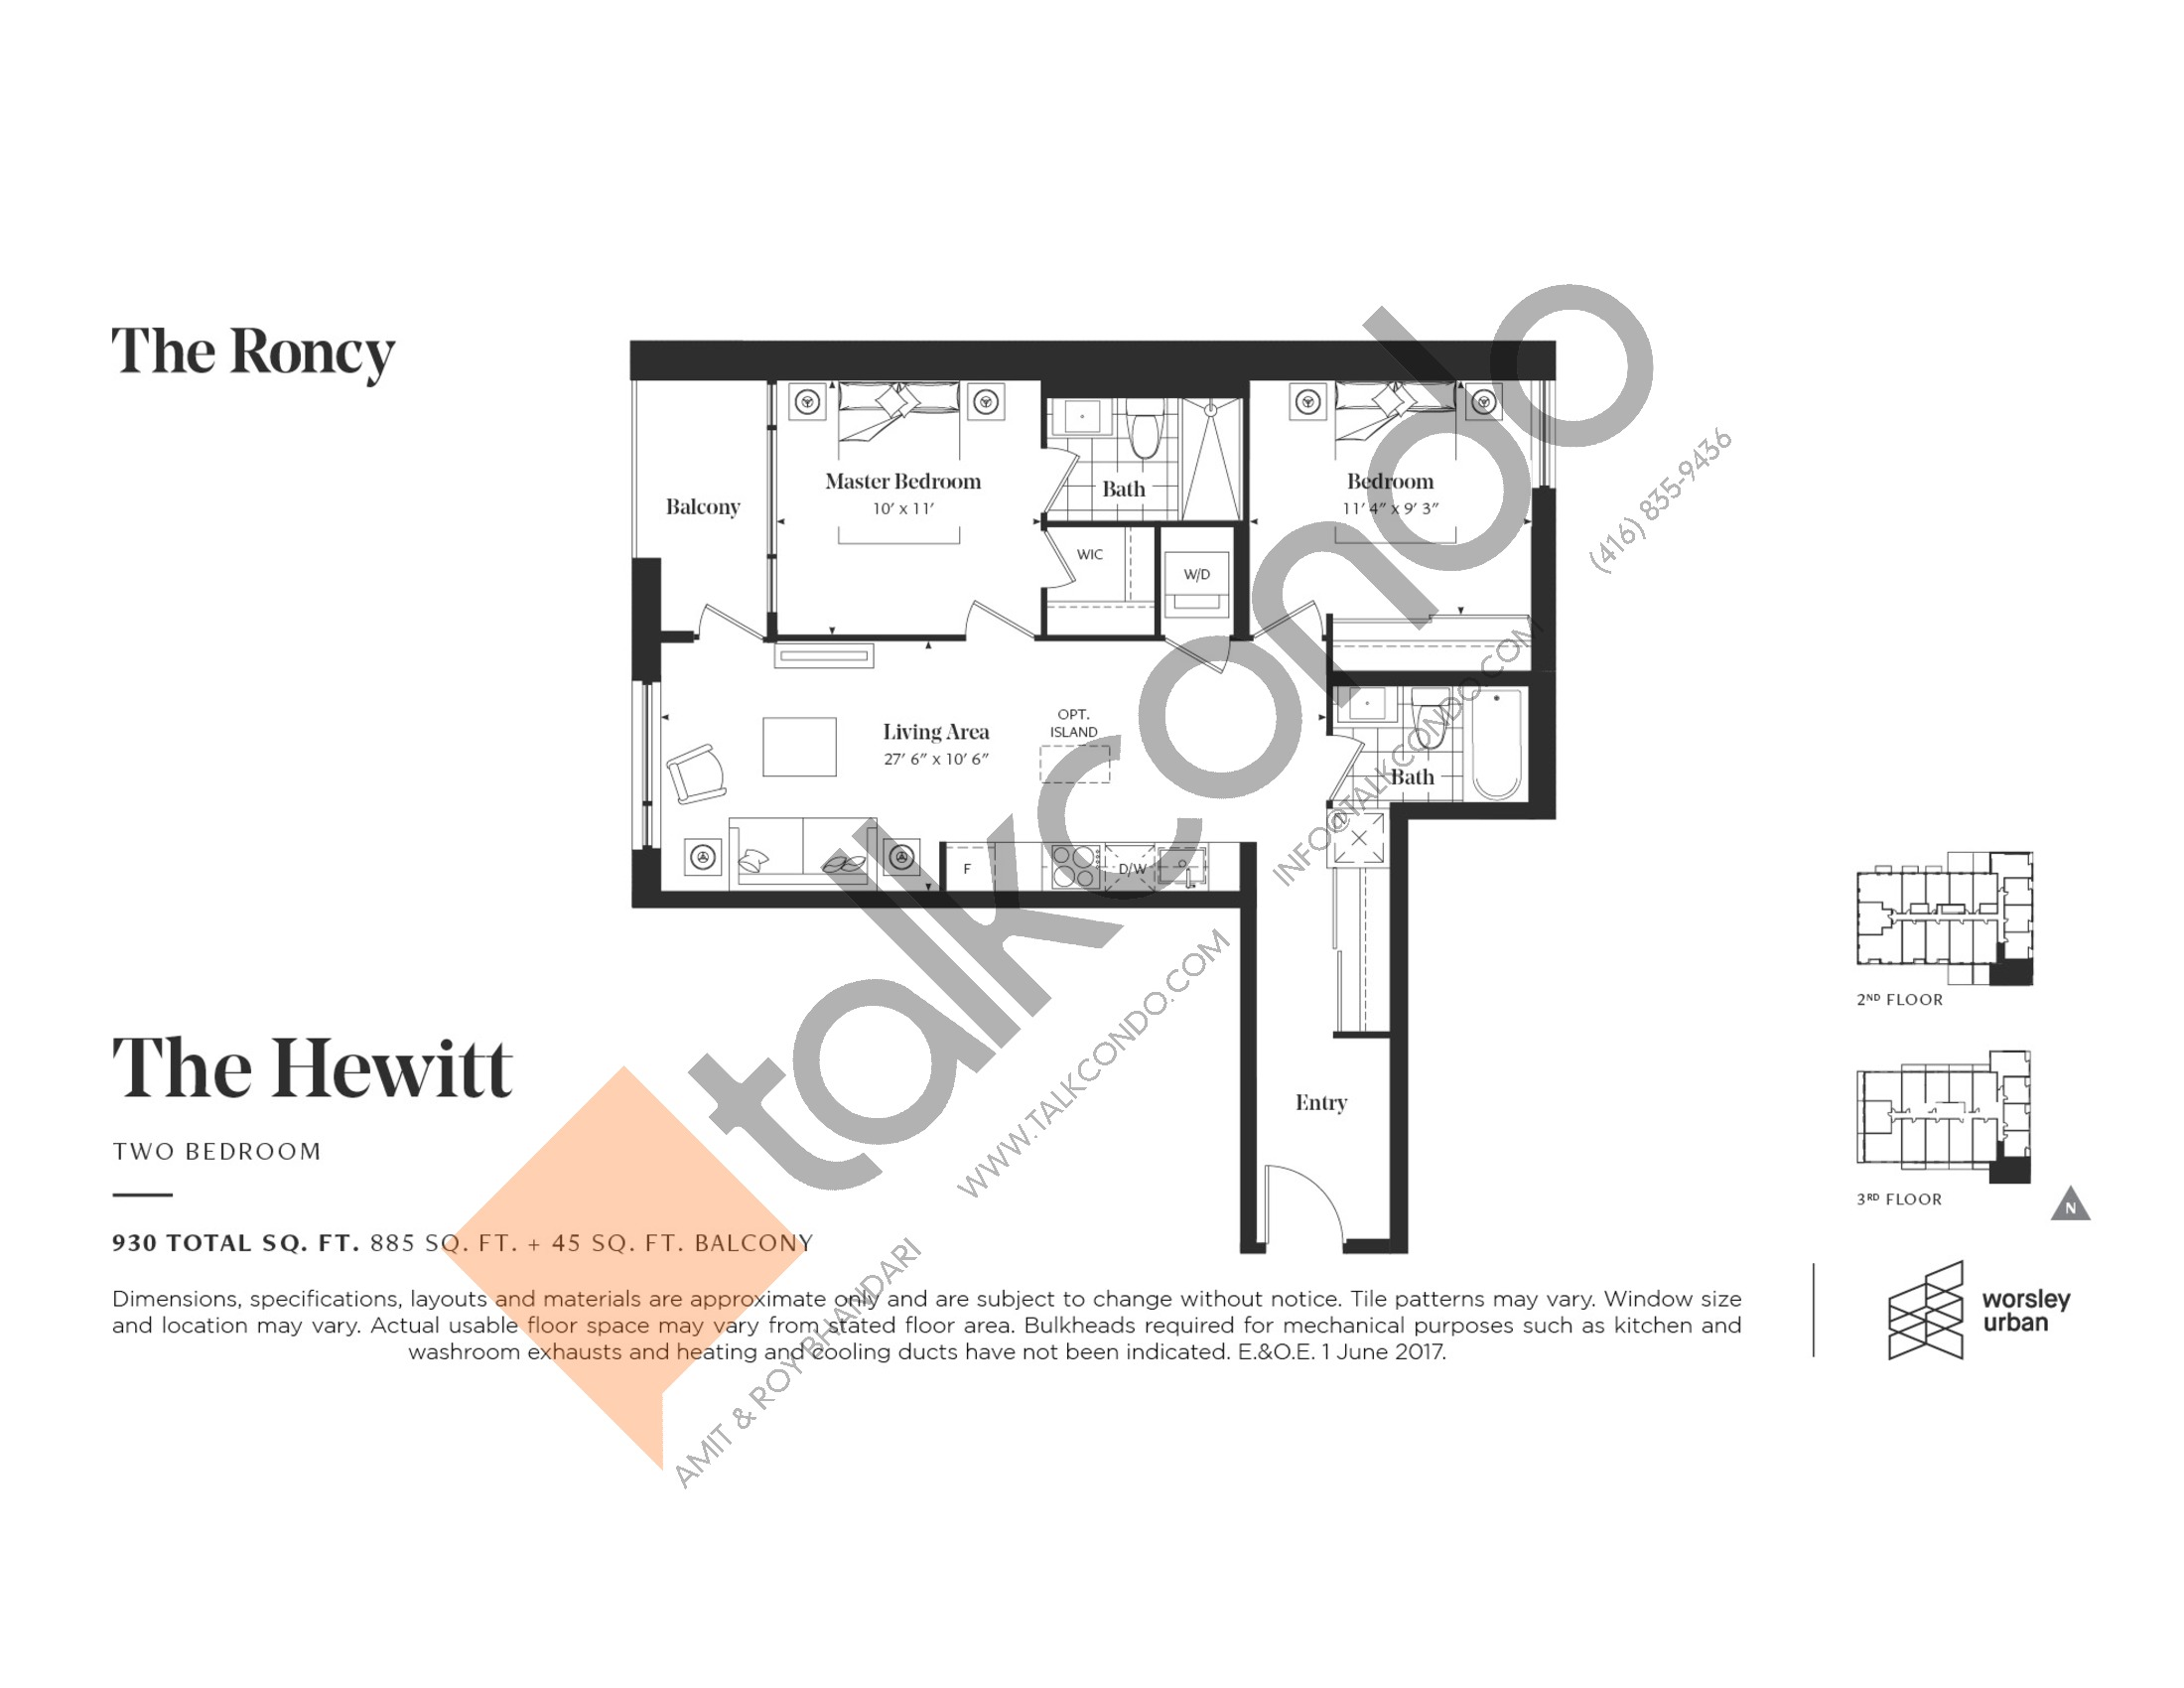 The Hewitt Floor Plan at The Roncy Condos - 885 sq.ft